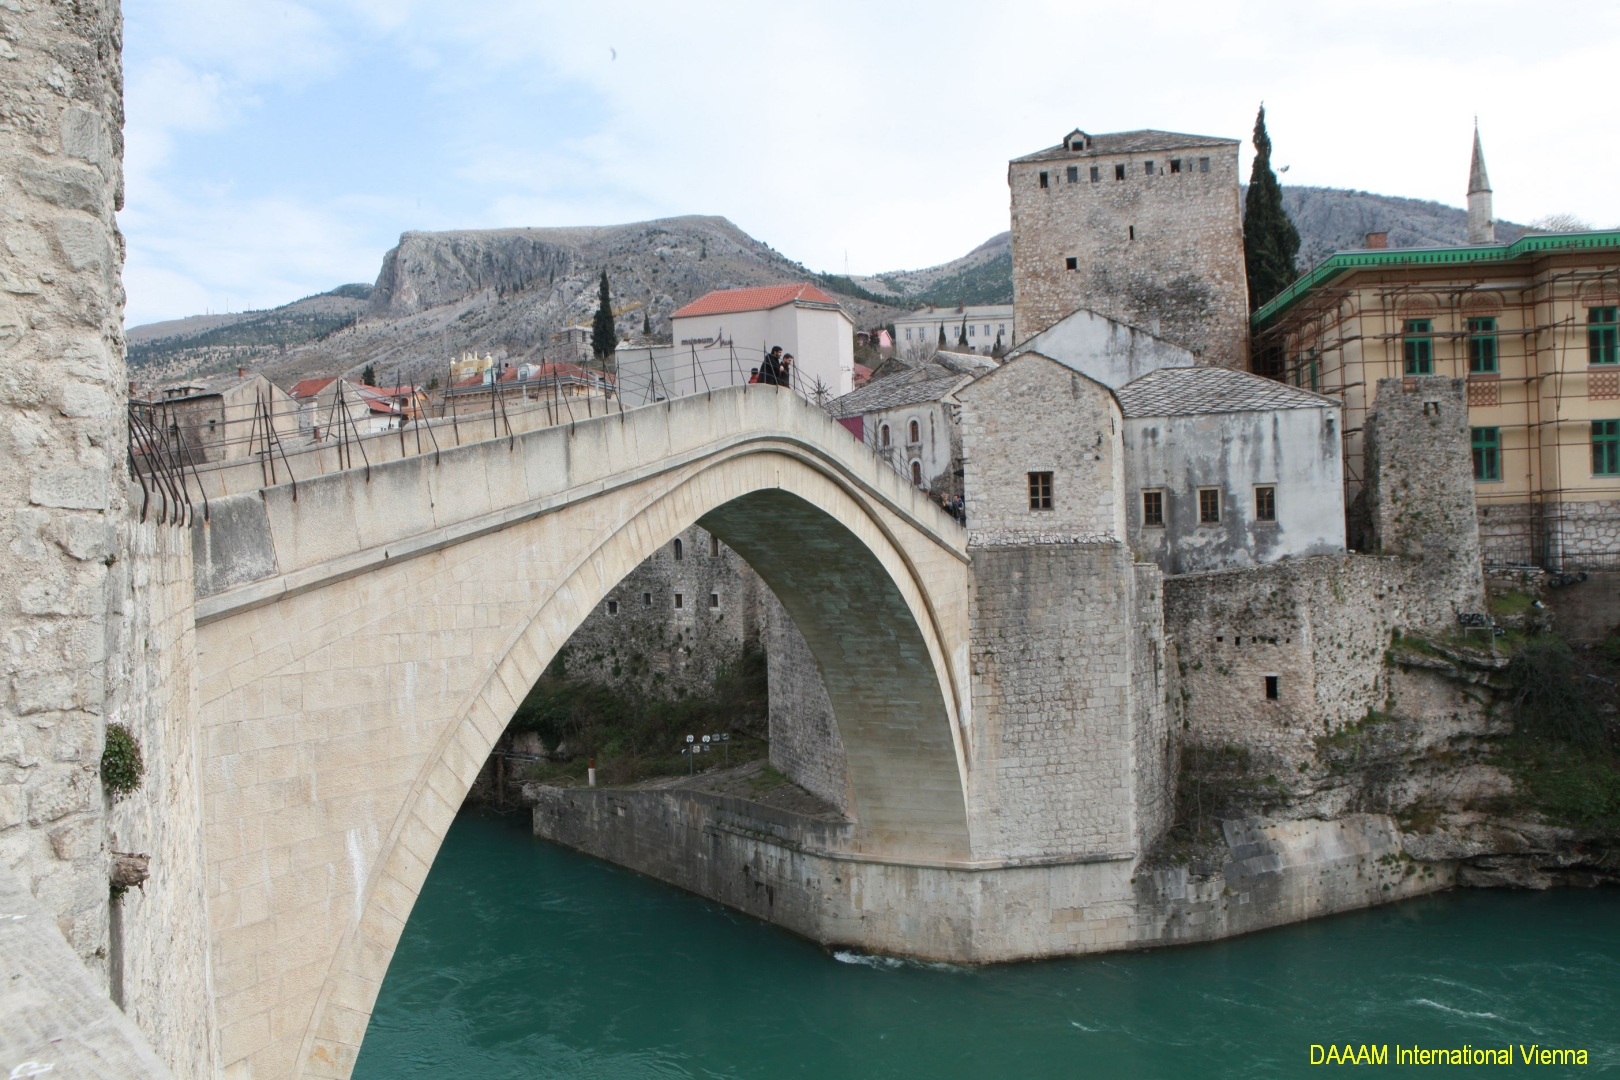 DAAAM_2016_Mostar_01_Magic_City_of_Mostar_055